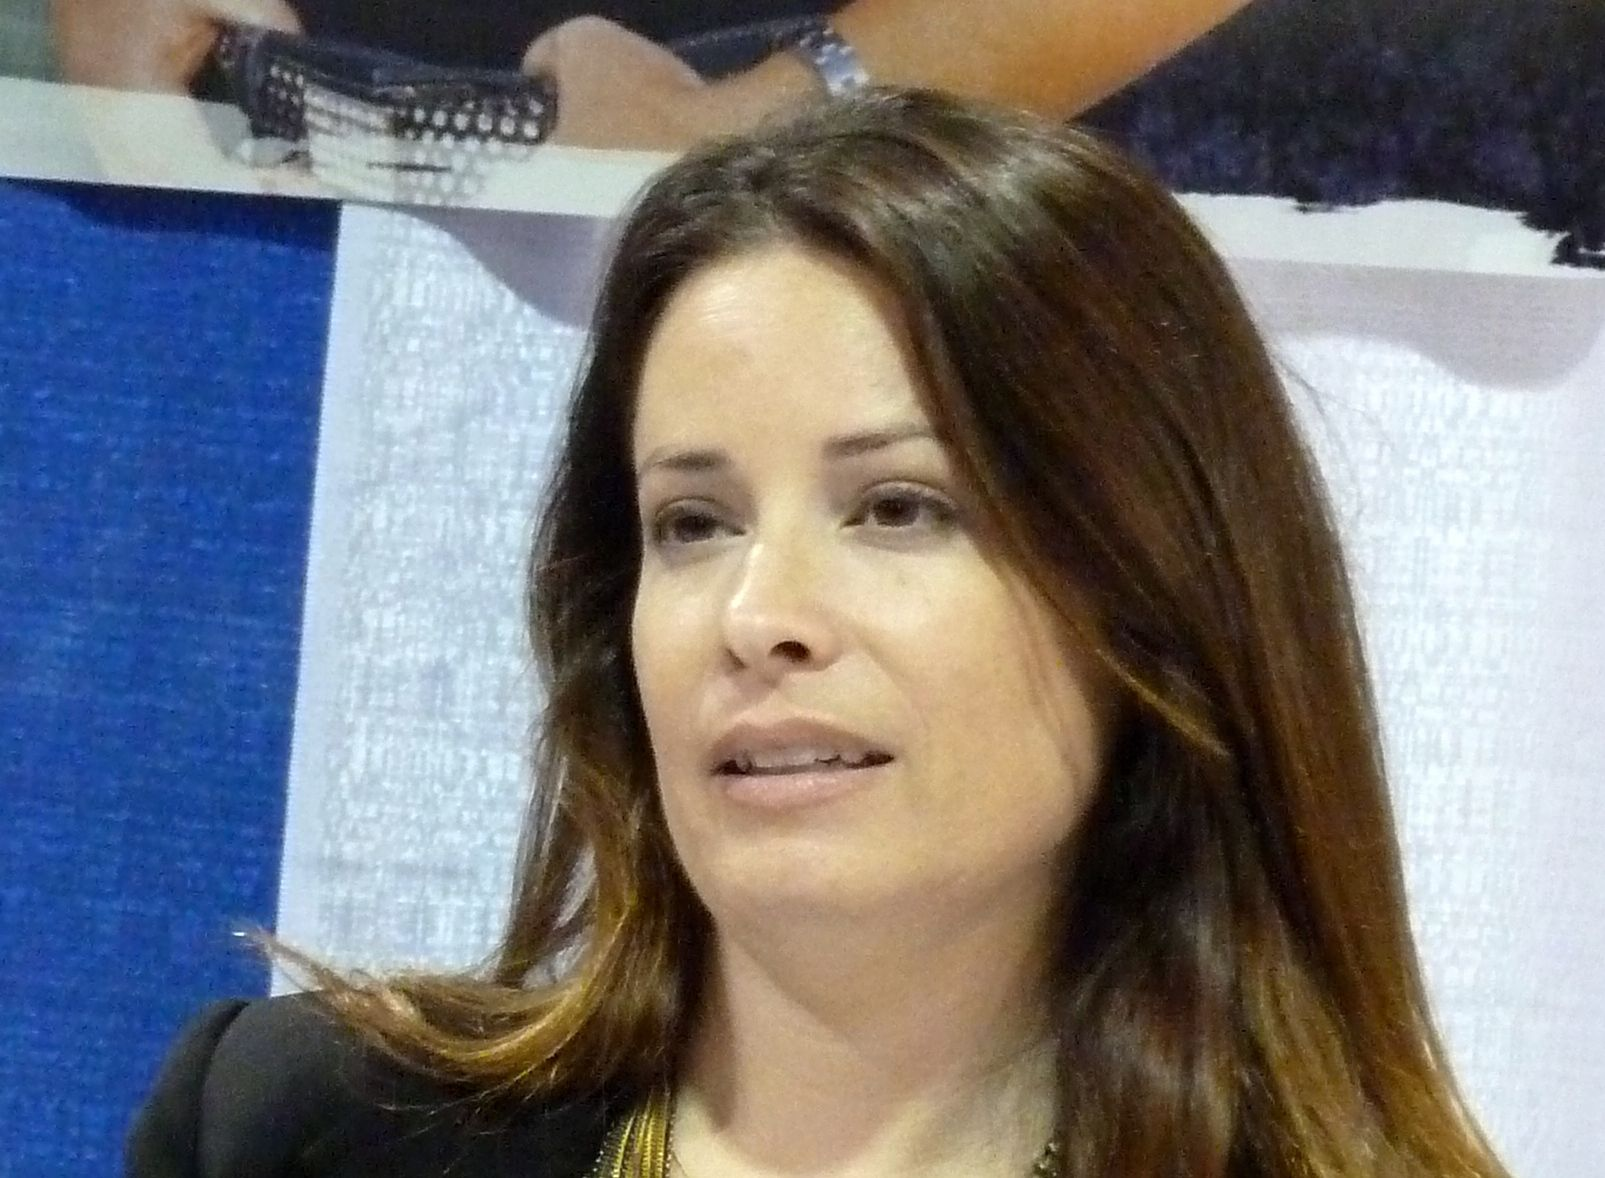 'Charmed' Reunion In The Works? Holly Marie Combs Speaks Up! - http://www.morningnewsusa.com/charmed-reunion-works-holly-marie-combs-speaks-2373137.html